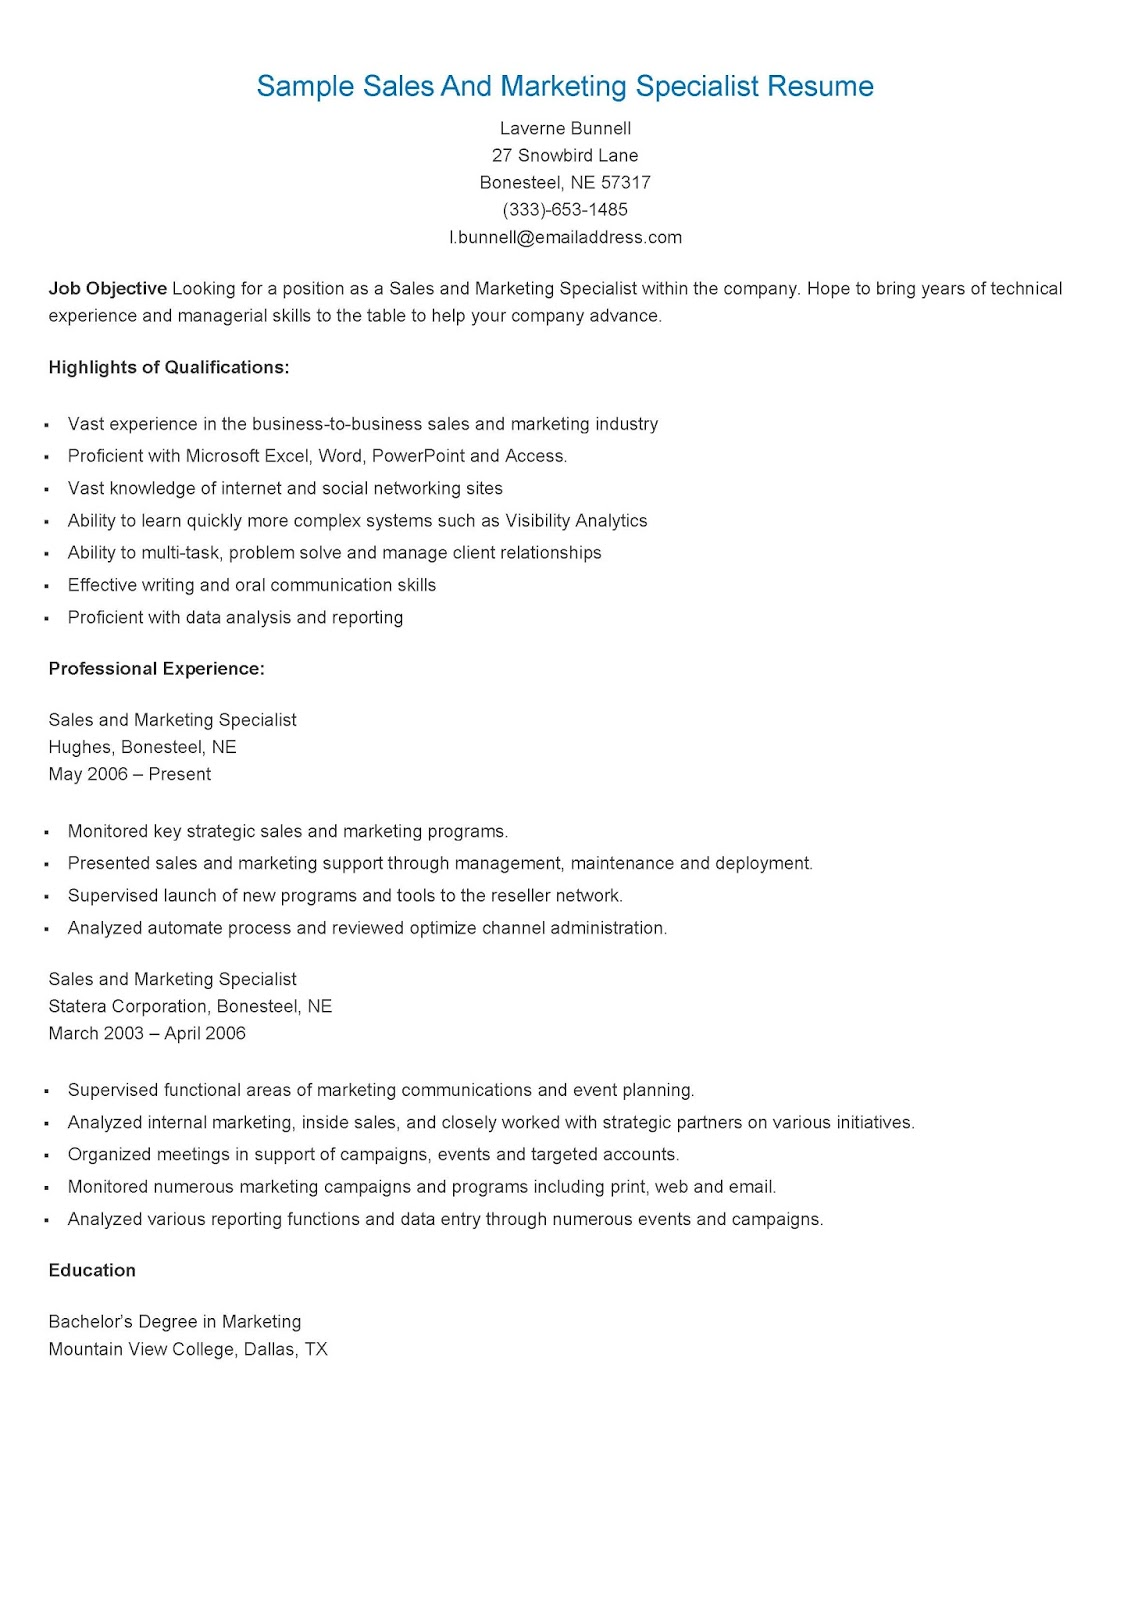 Sanitation Worker Resume Resume Samples Sample Sales And Marketing Specialist Resume